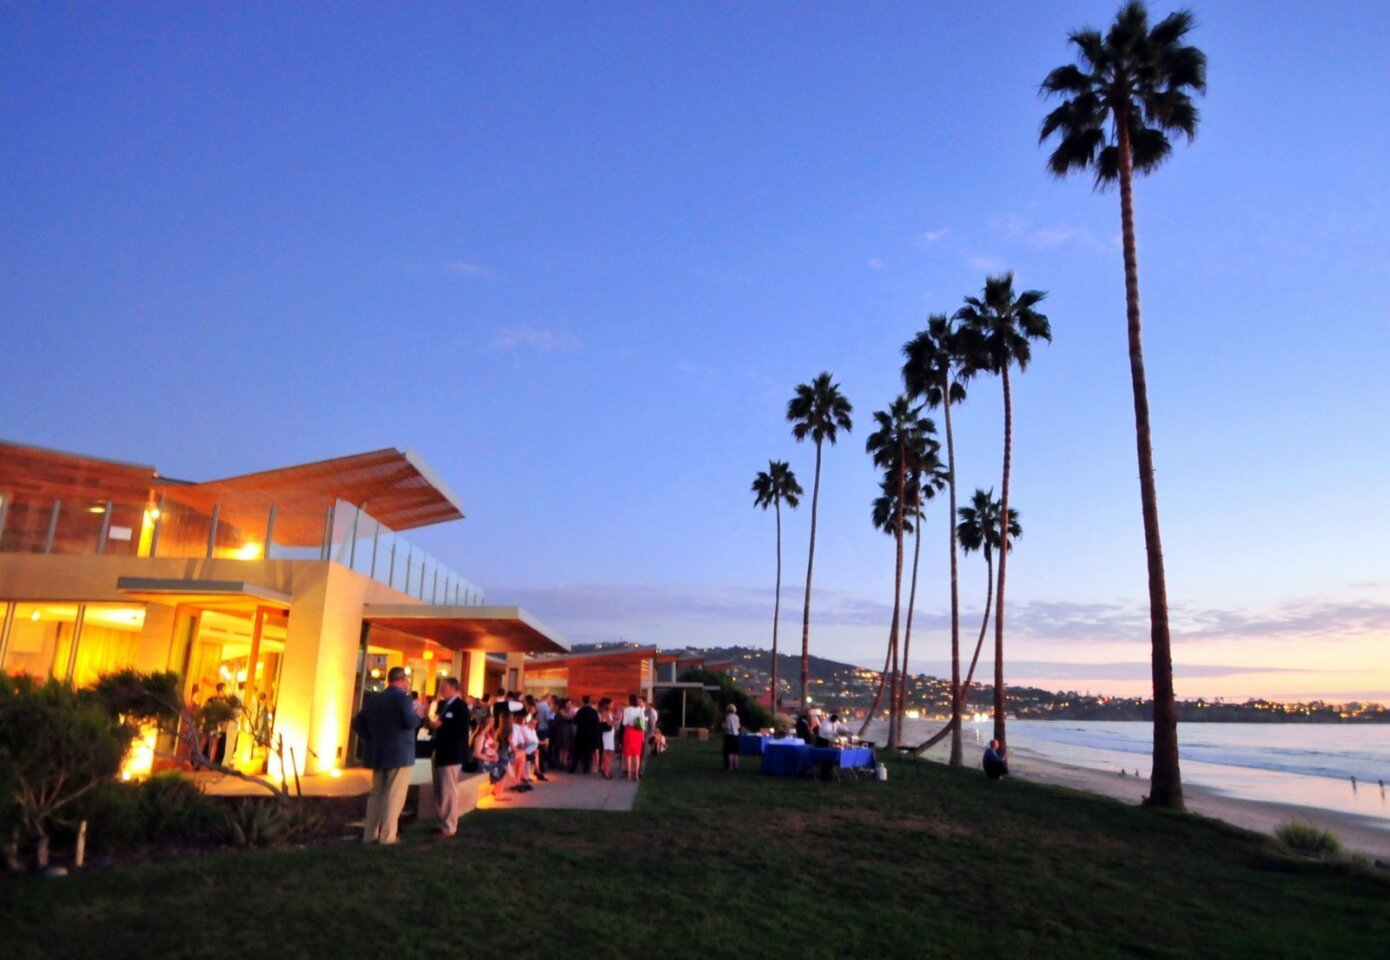 Attendees are treated to a picture perfect evening on the bluffs of La Jolla at Scripps Seaside Forum for San Diego Coastkeeper's Seaside Soirée, Sept. 10, 2014.